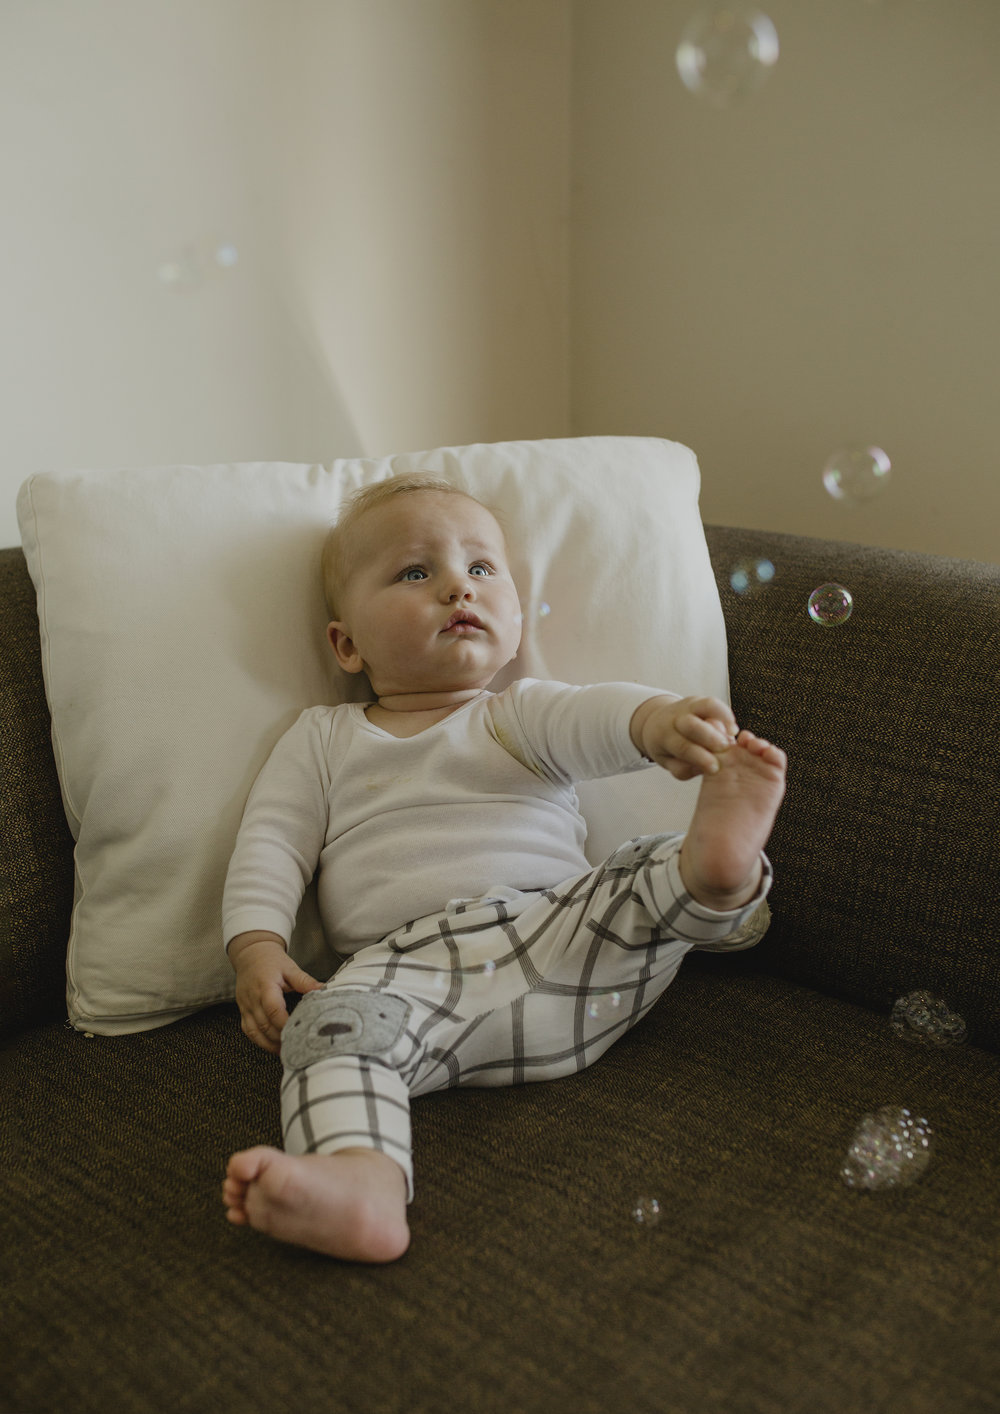 6 month old baby looking at bubbles